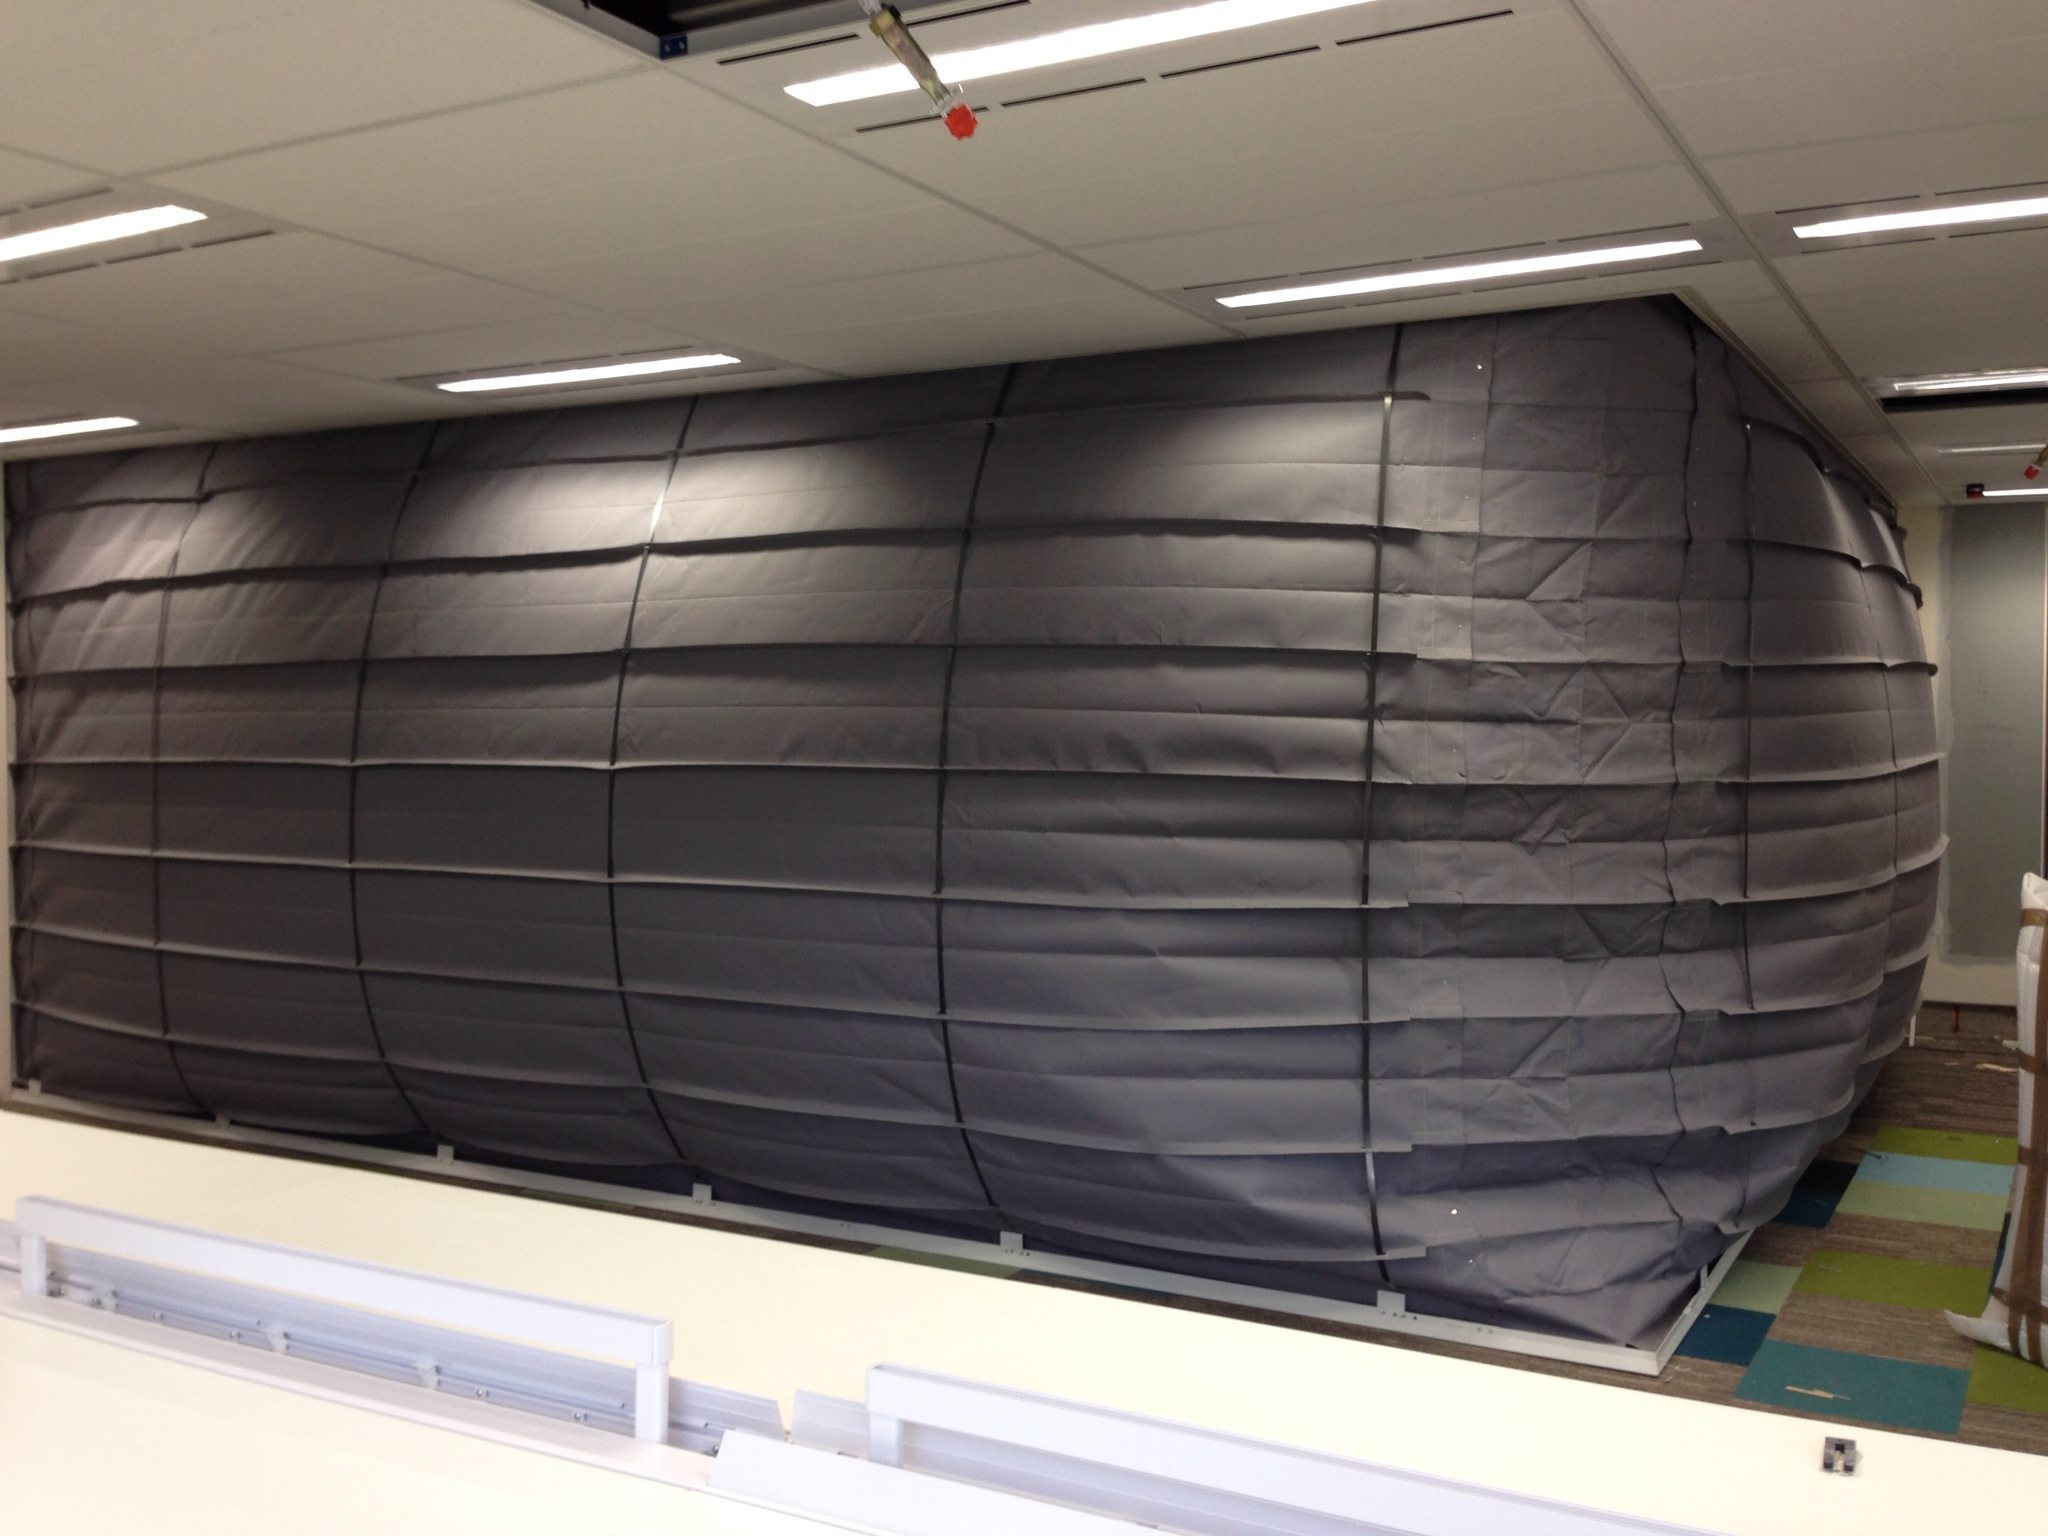 Concertina fire curtain with AS1668.1 zone pressurisation system